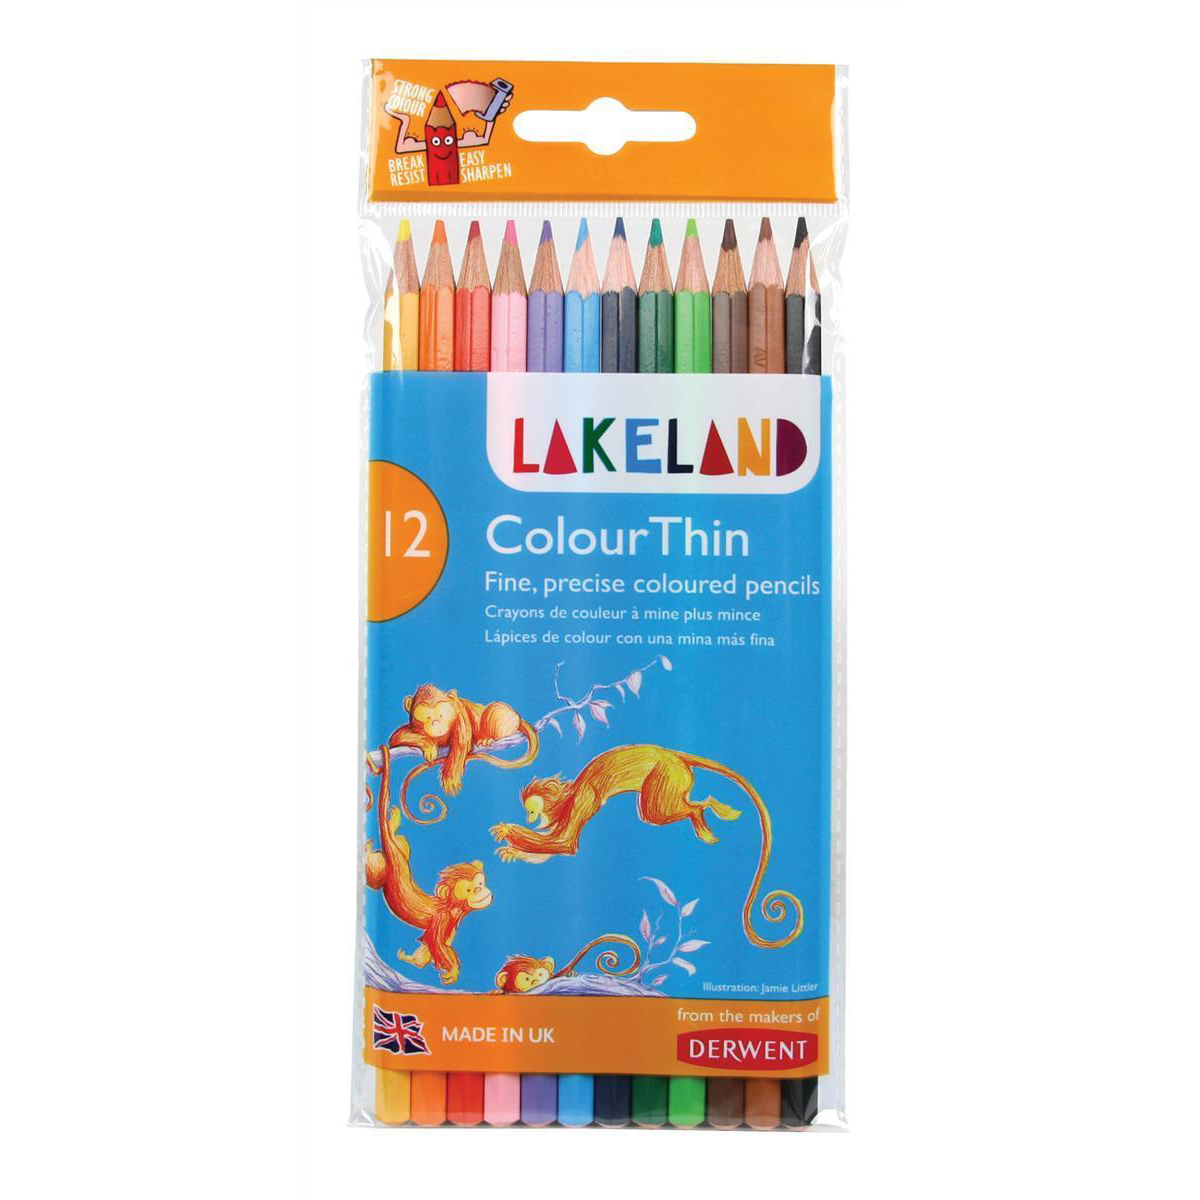 Lakeland Colour Thin Colouring Pencils Hexagonal Barrel Hard-wearing Wallet Asstd Ref 0700077 Pack 12